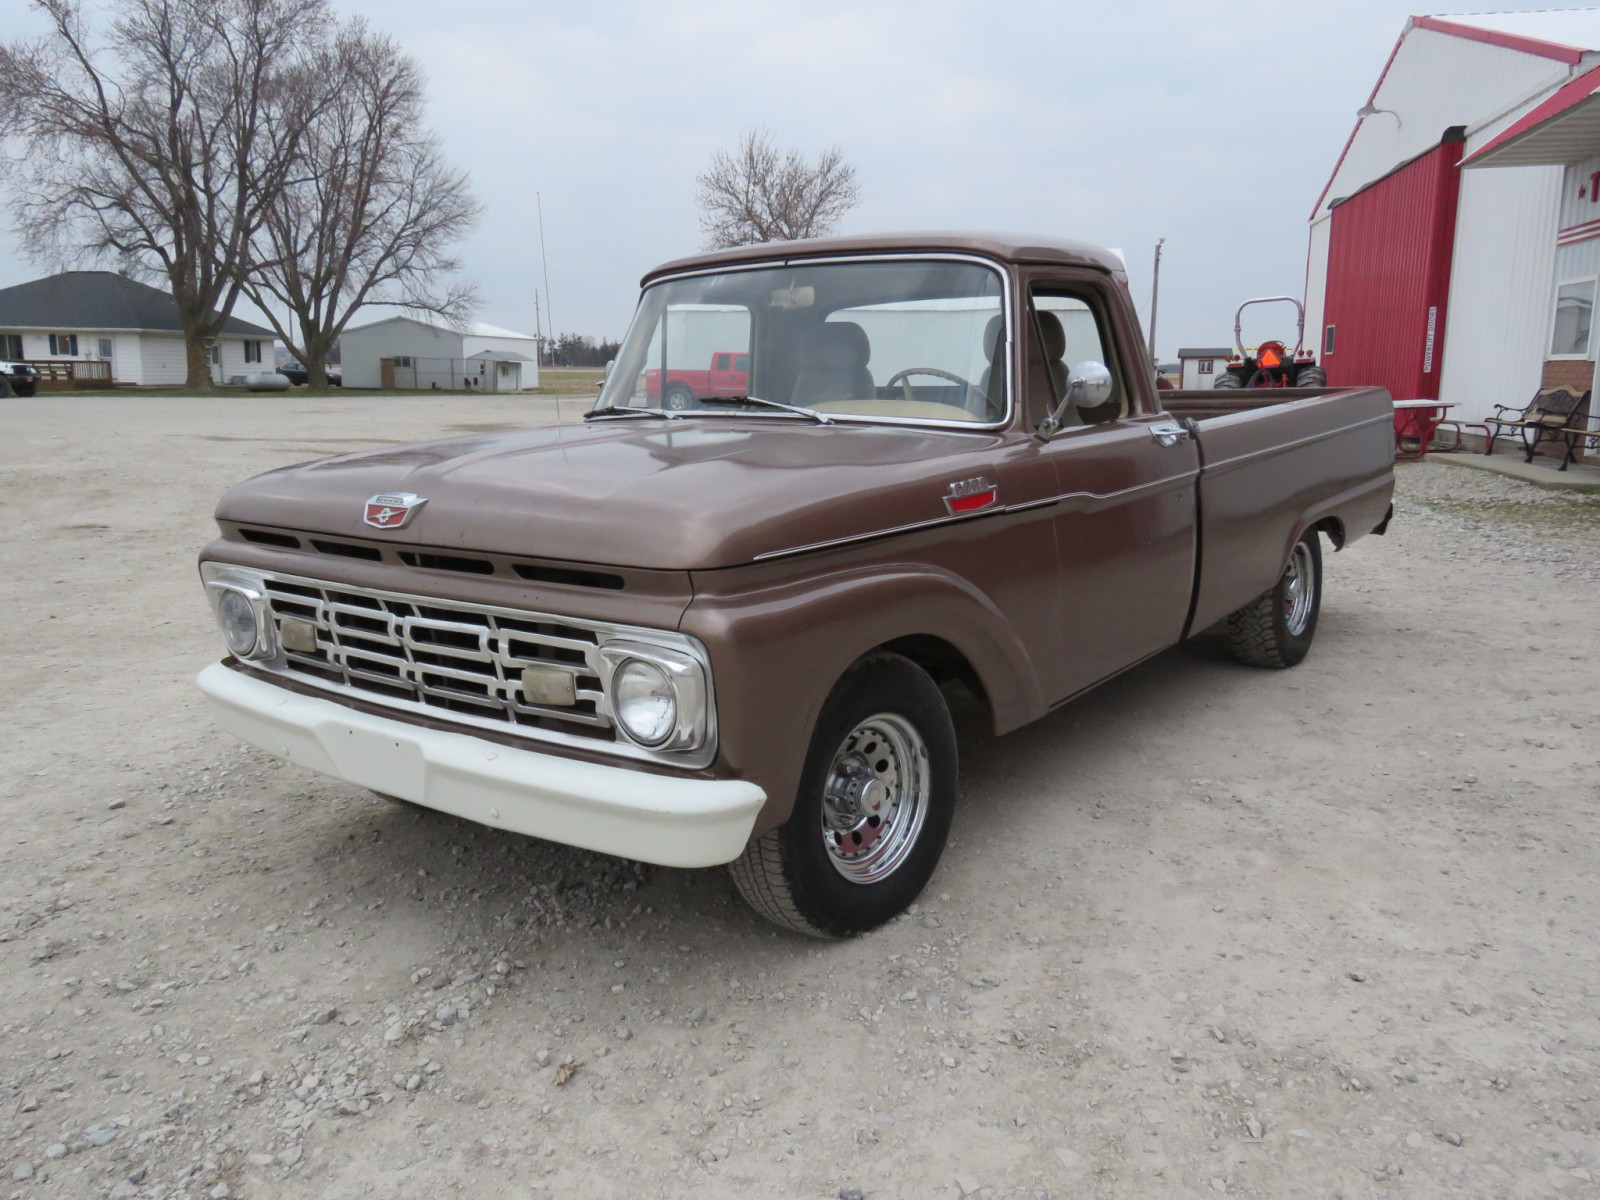 1964 Ford F100 Custom Cab Pickup - Image 3